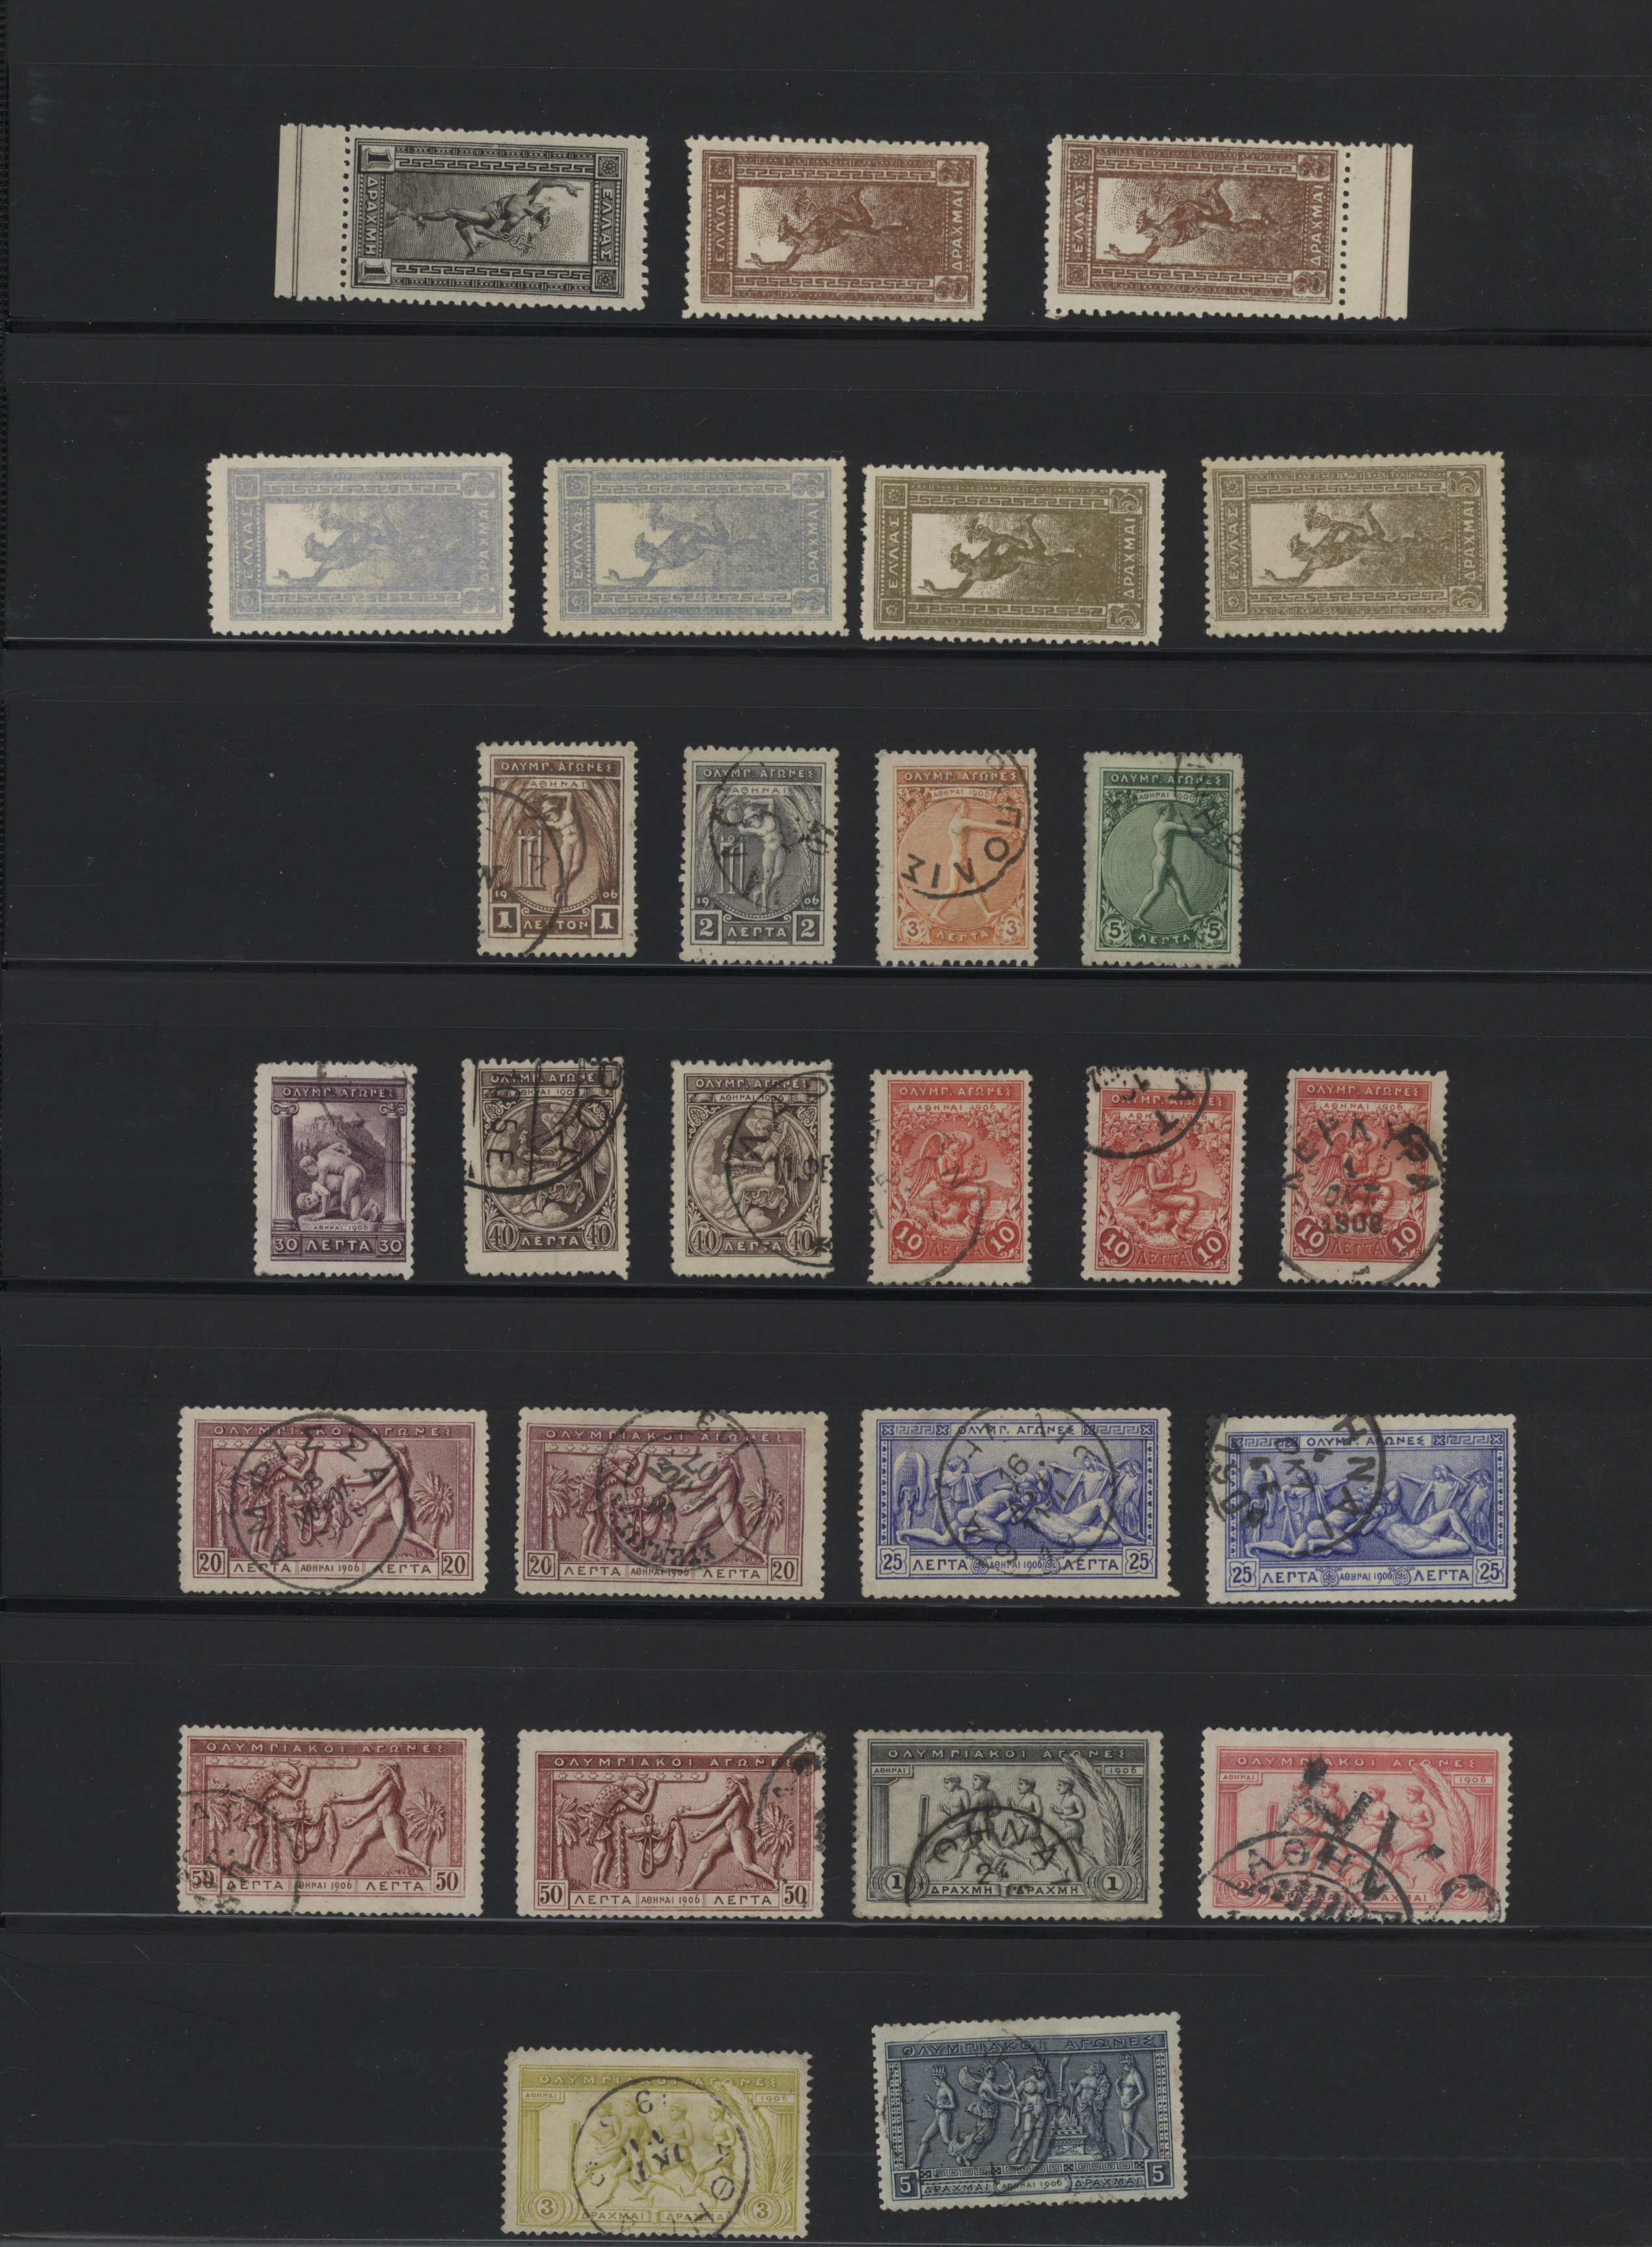 Lot 21820 - griechenland  -  Auktionshaus Christoph Gärtner GmbH & Co. KG Sale #47 Collections: Overseas, Thematics, Europe